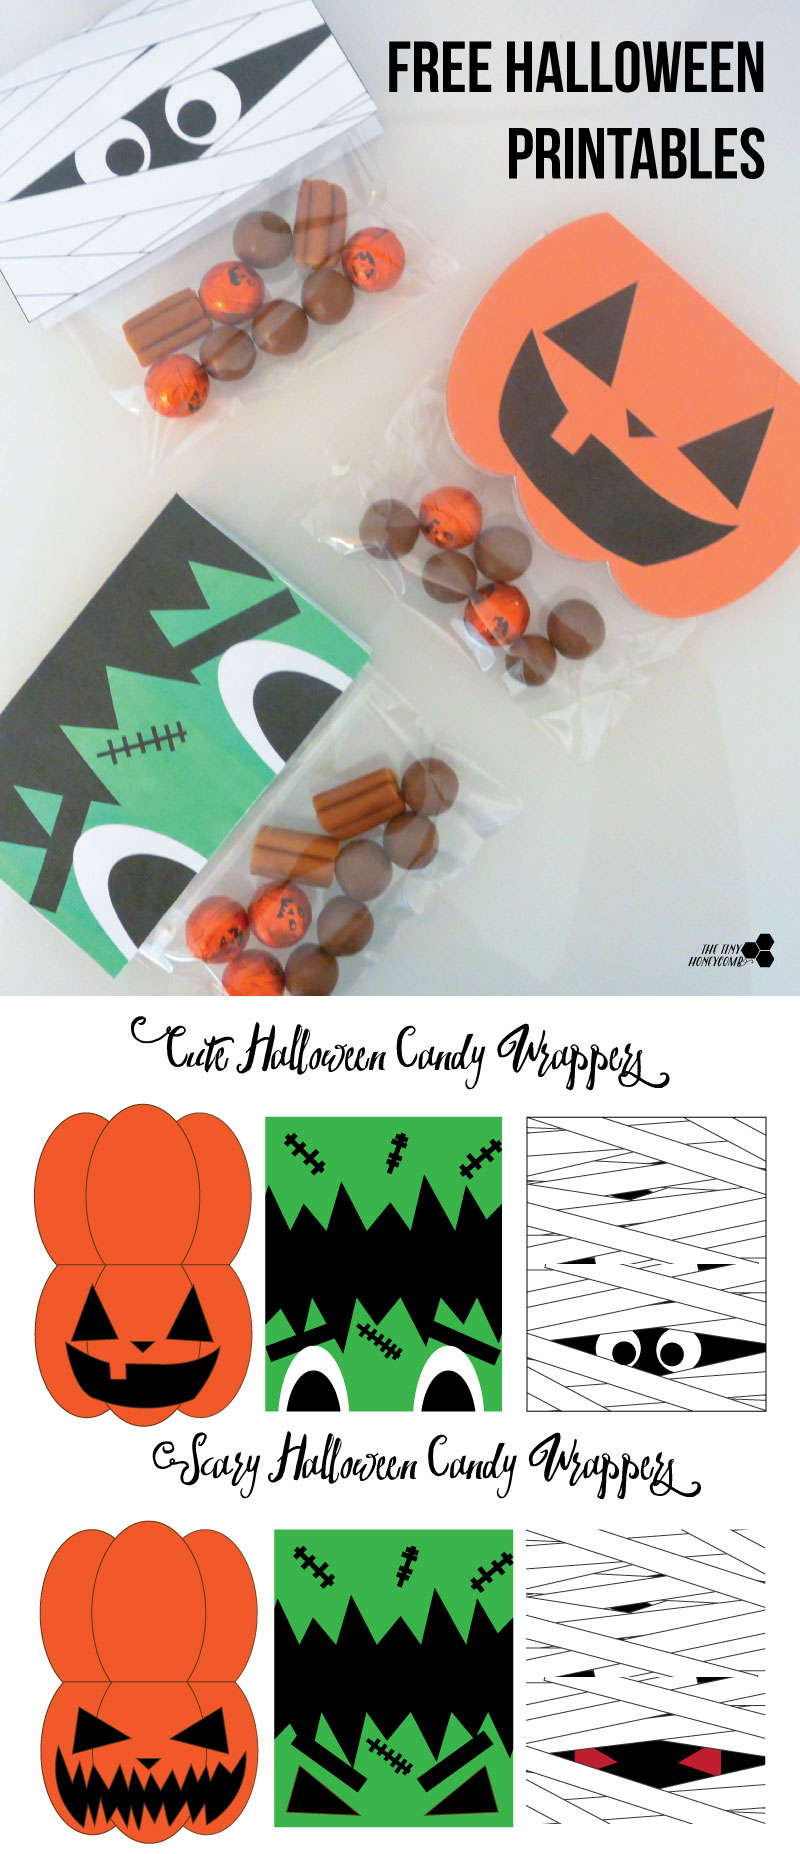 Diy Halloween Candy Wrappers With Free Pdf The Tiny Honeycomb